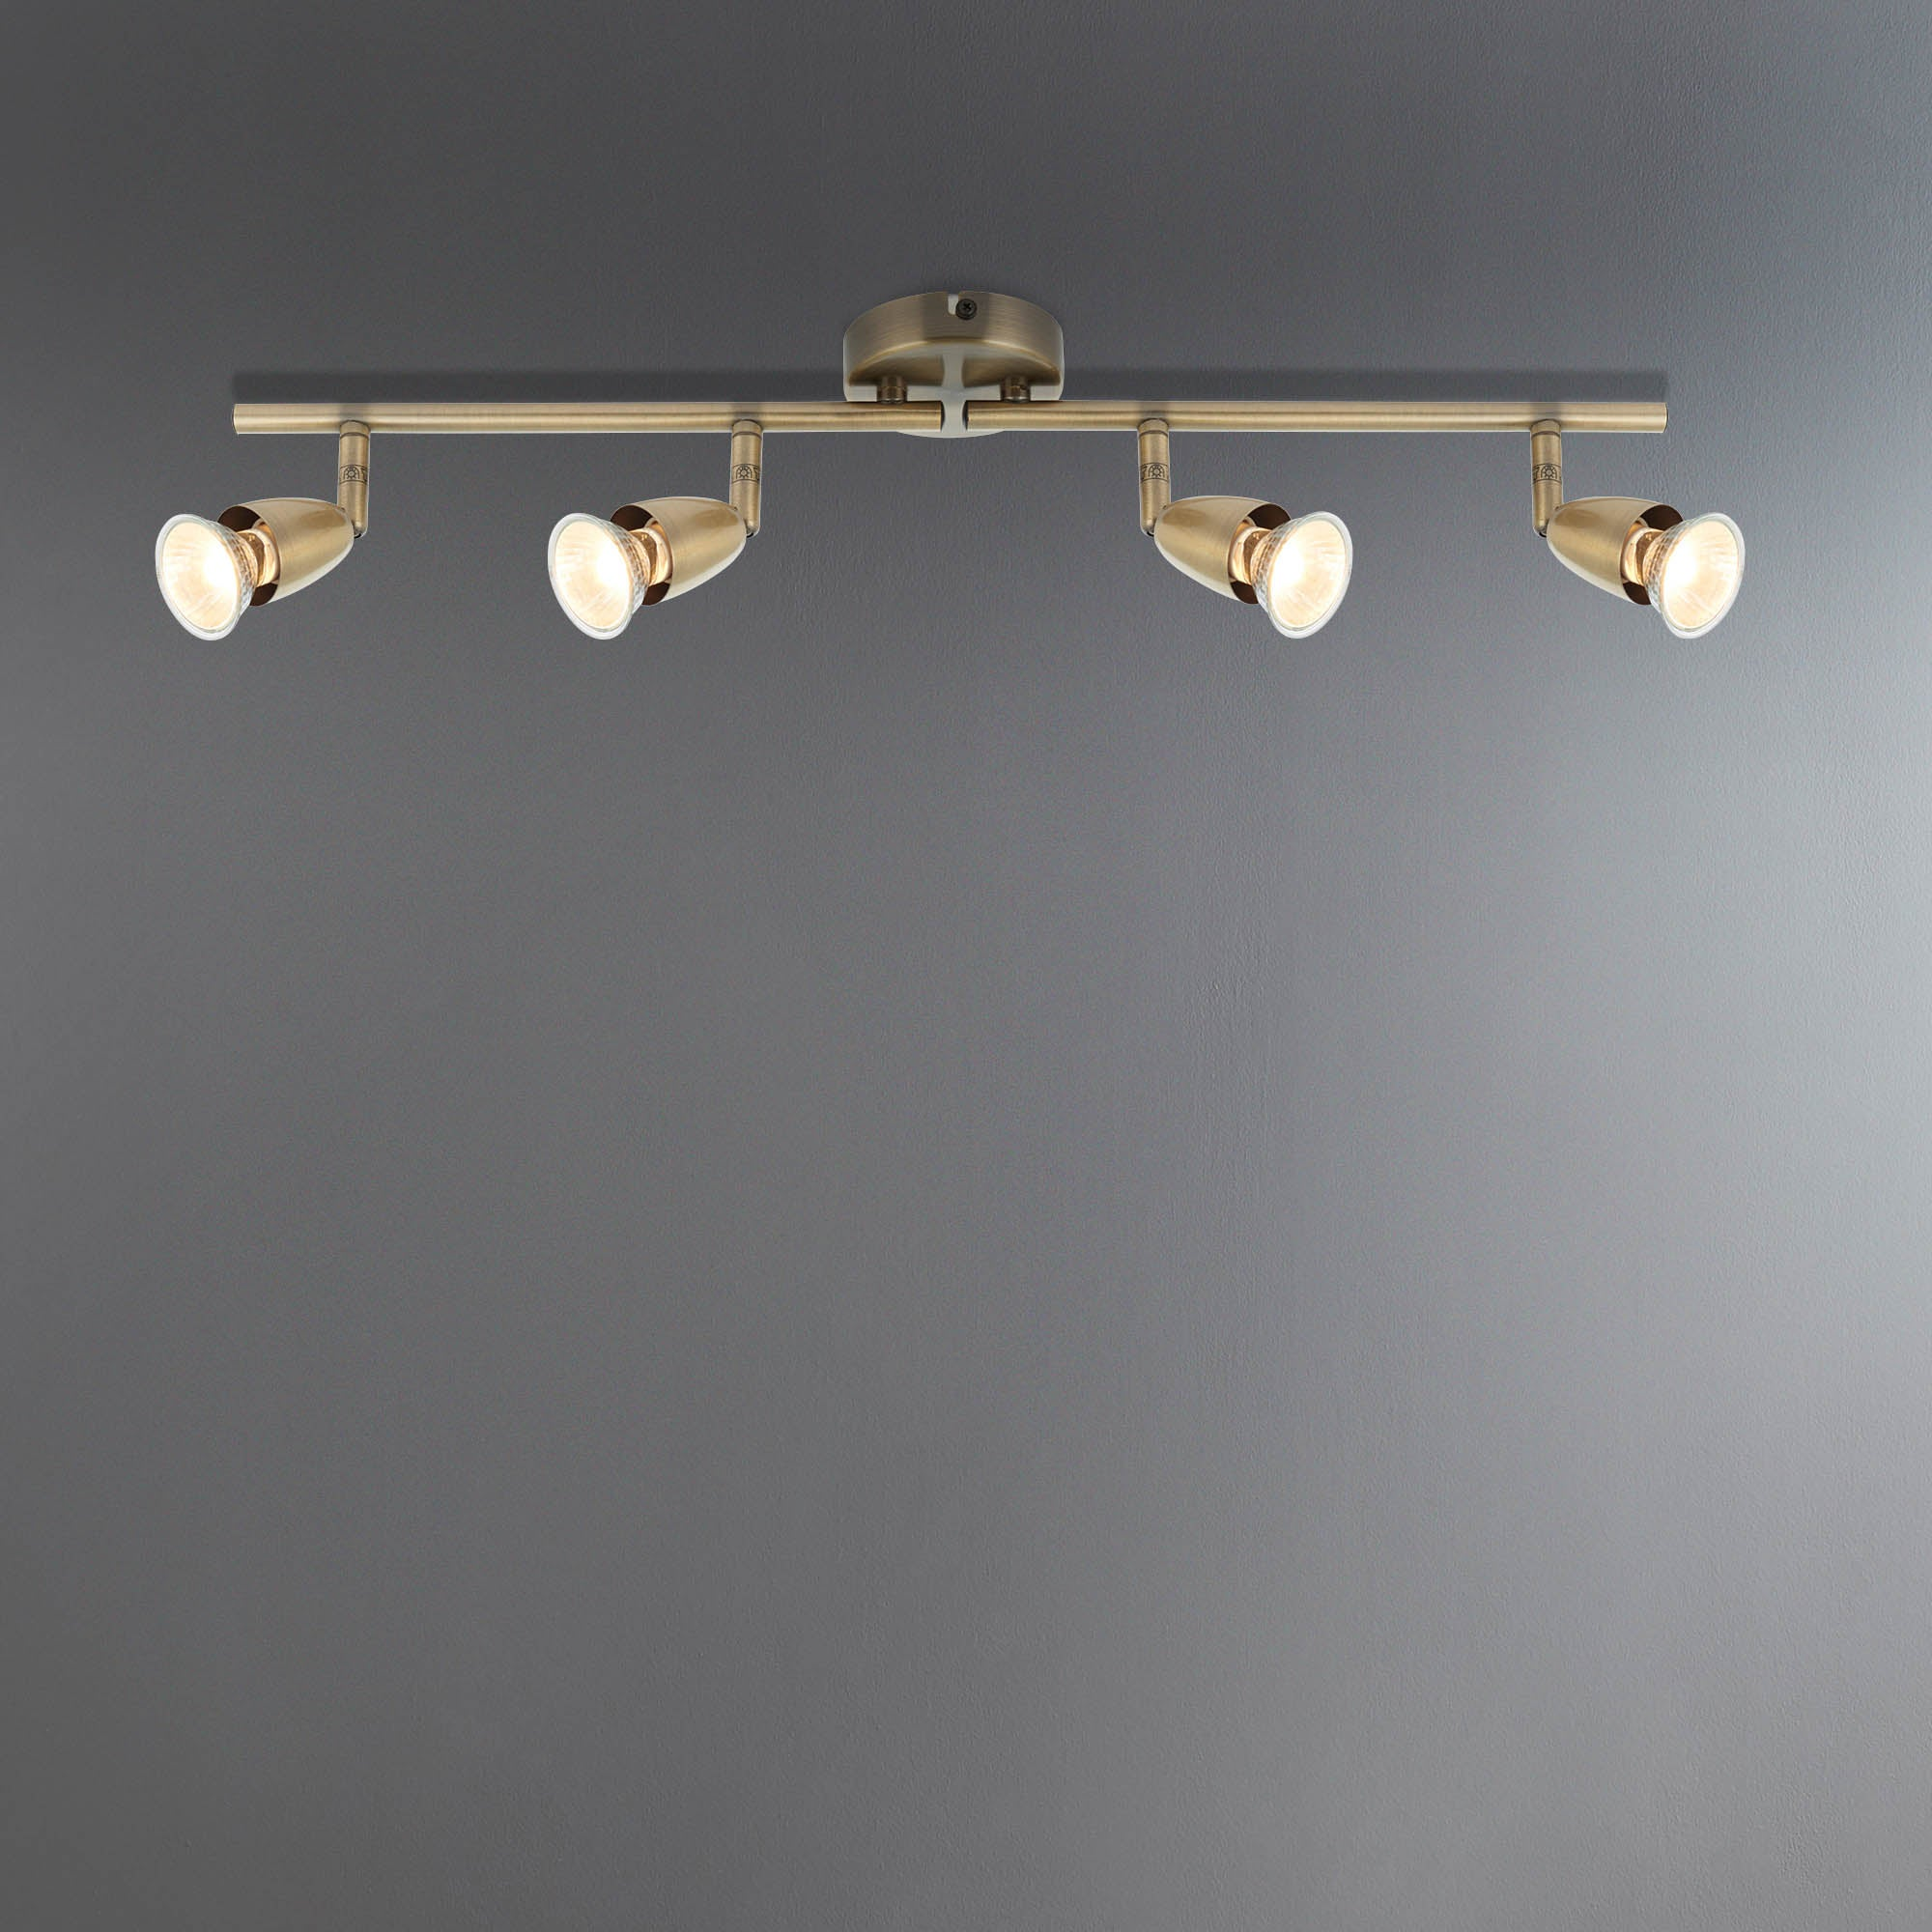 Image of Ameno Brass 4 Light Spotlight Bar Antique Brass